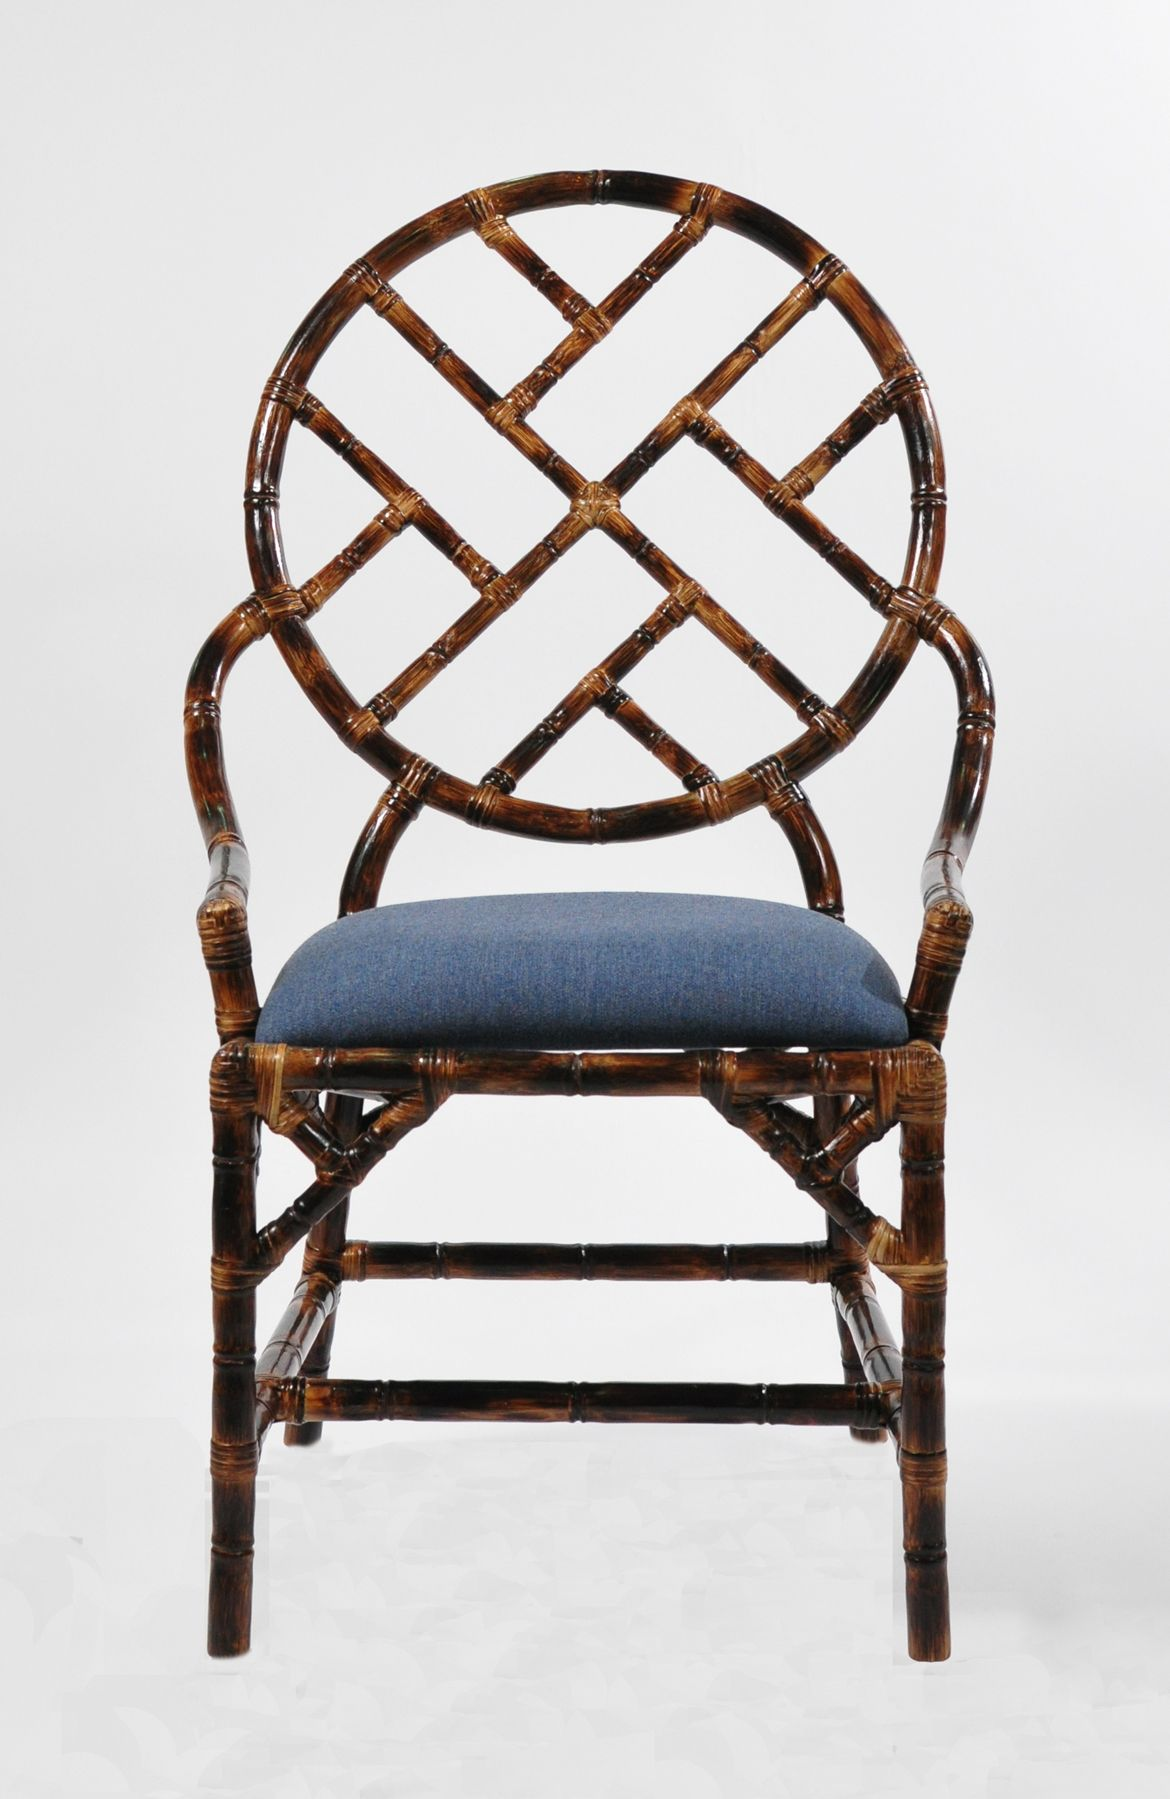 CRACKED CHIPPENDALE - Cane, Rattan, Wicker, Cane Furniture, Wicker Furniture, Rattan Furniture, Cane Lounge, Cane Dining, Cane Sofa, Cane Barstool.